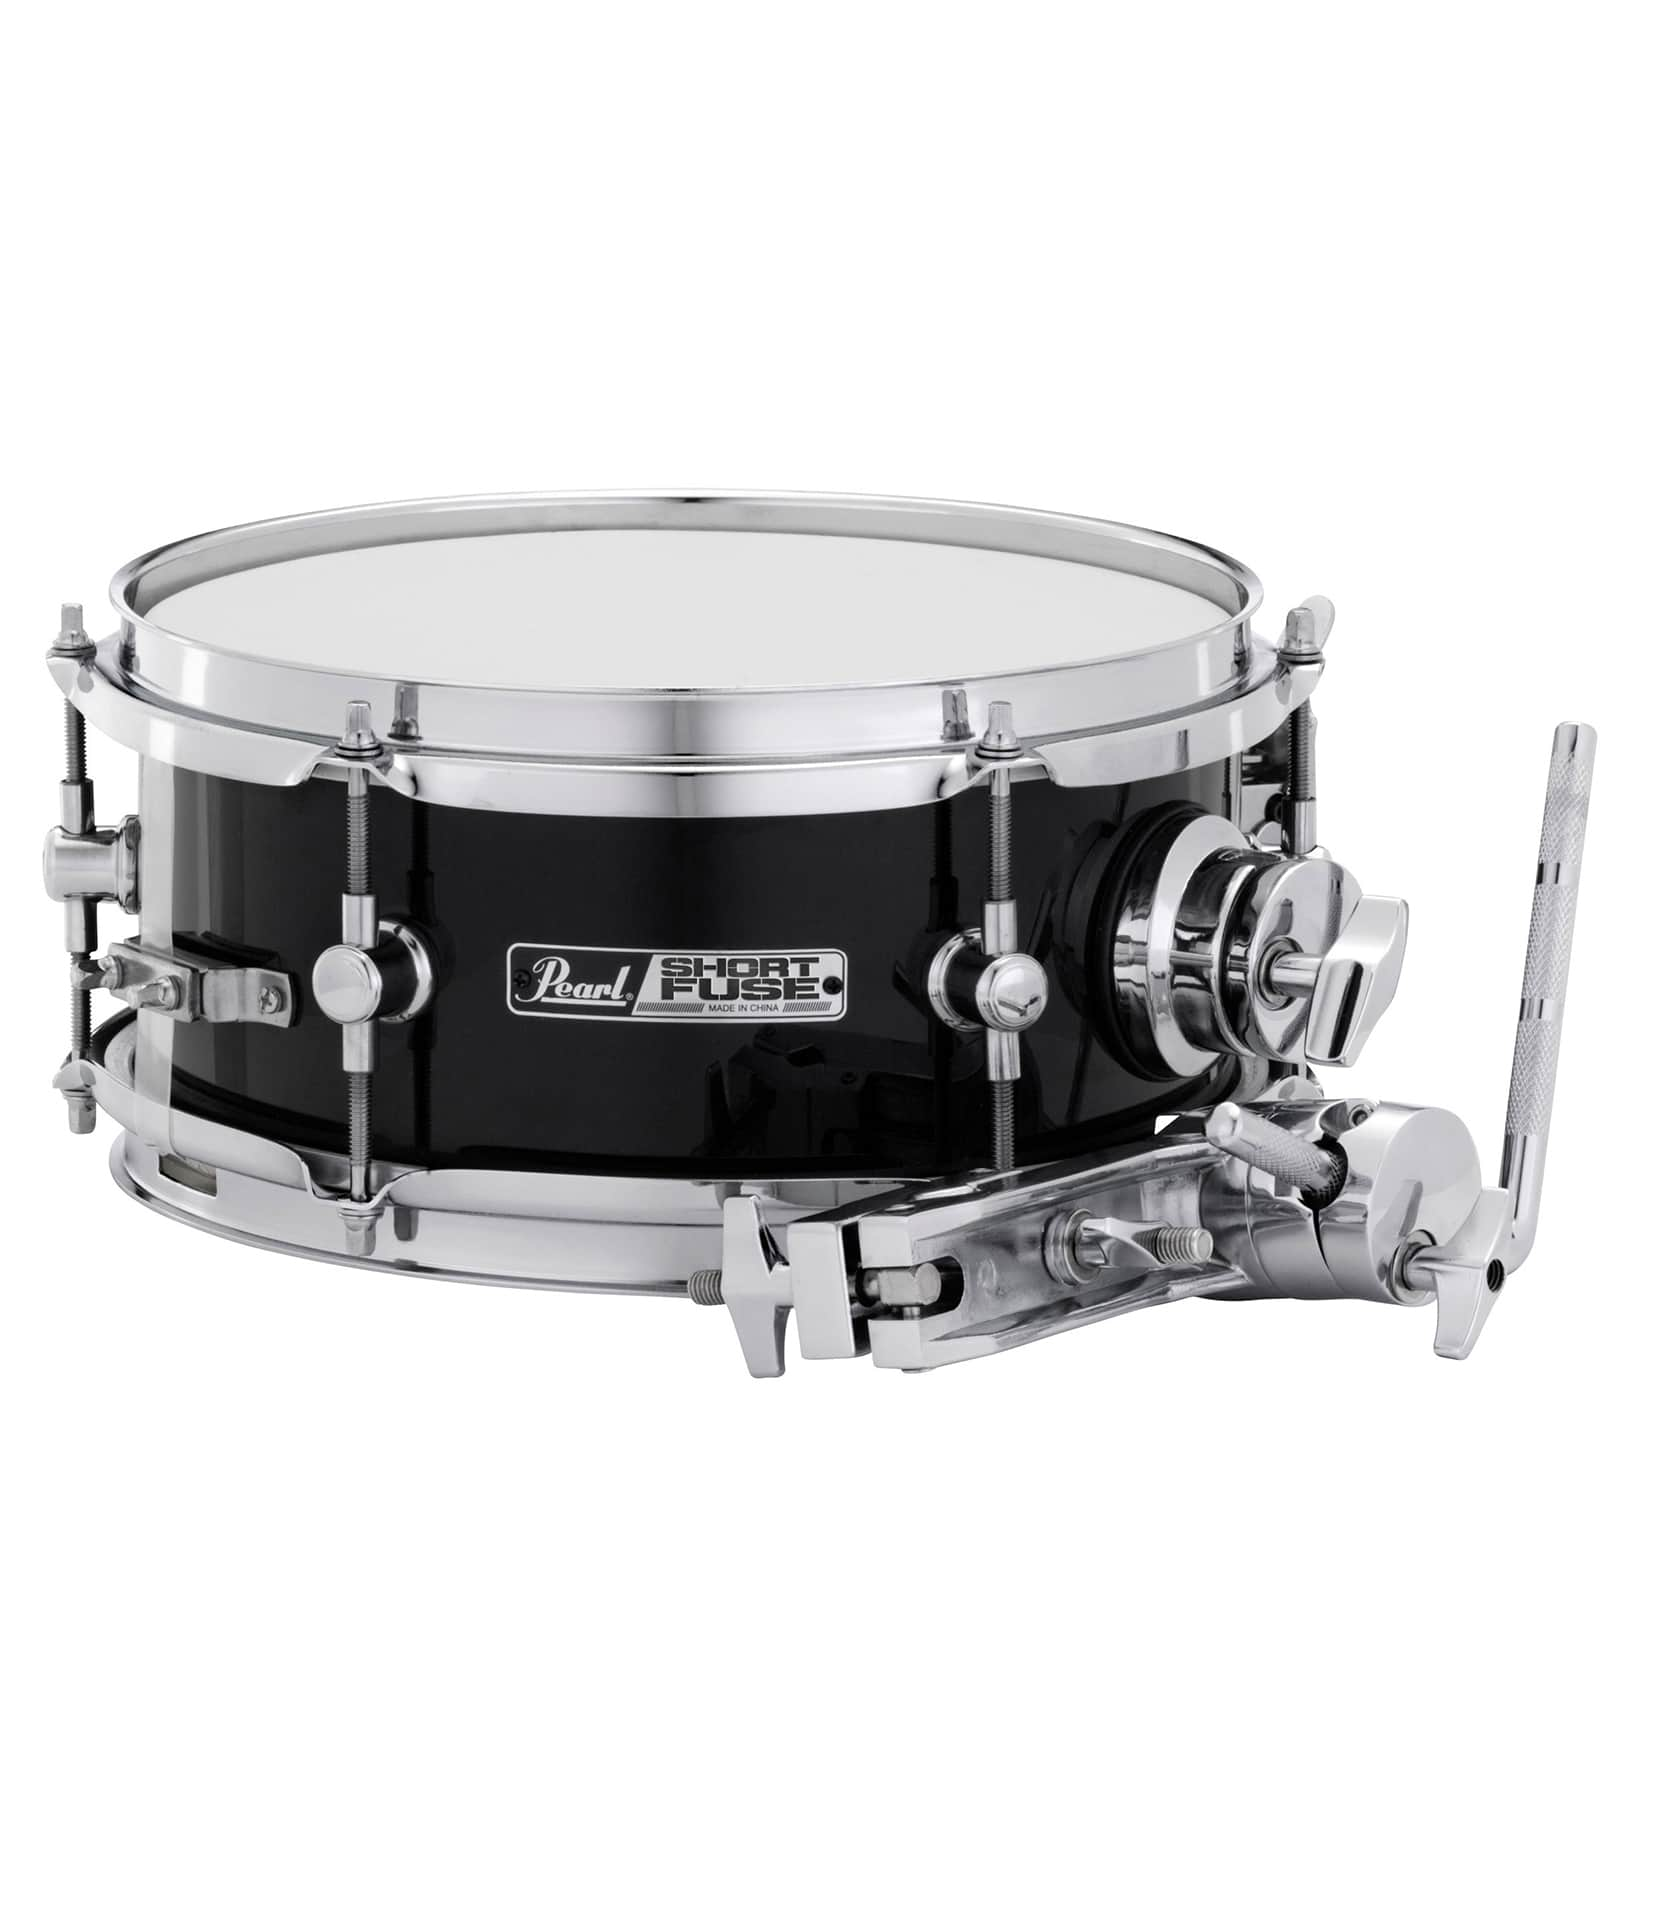 Pearl - SFS10 C Short Fuse 10 x 4 5 Snare Drum Black - Melody House Musical Instruments